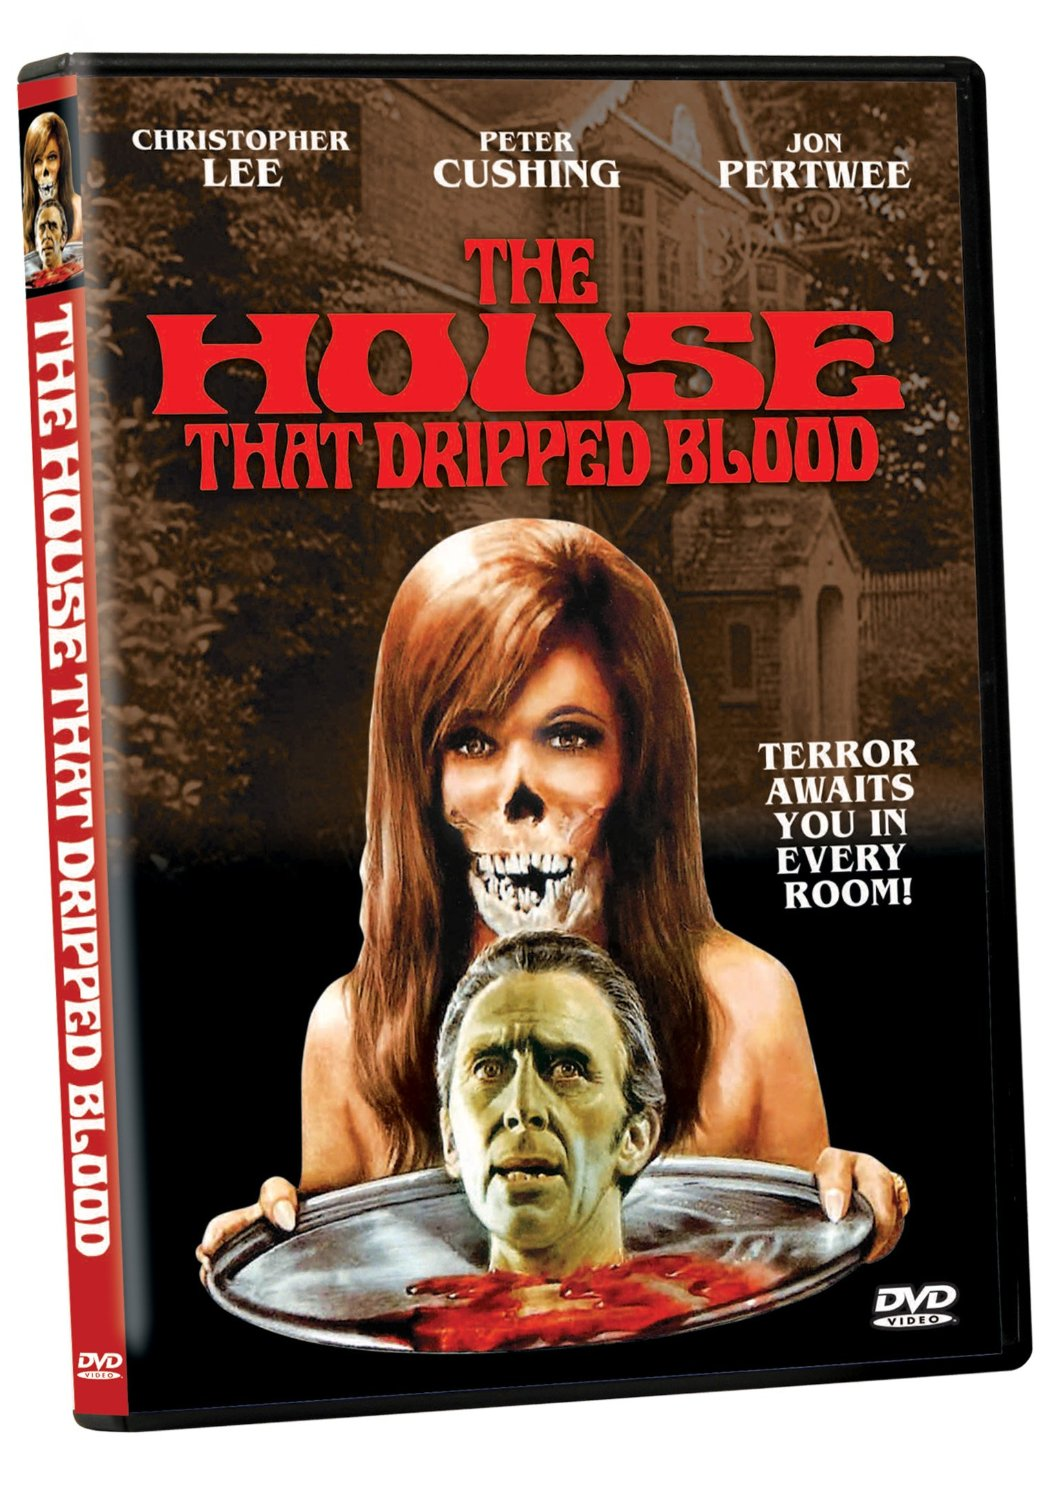 The House that Dripped Blood, starring Peter Cushing, Christopher Lee, Jon Pertwee